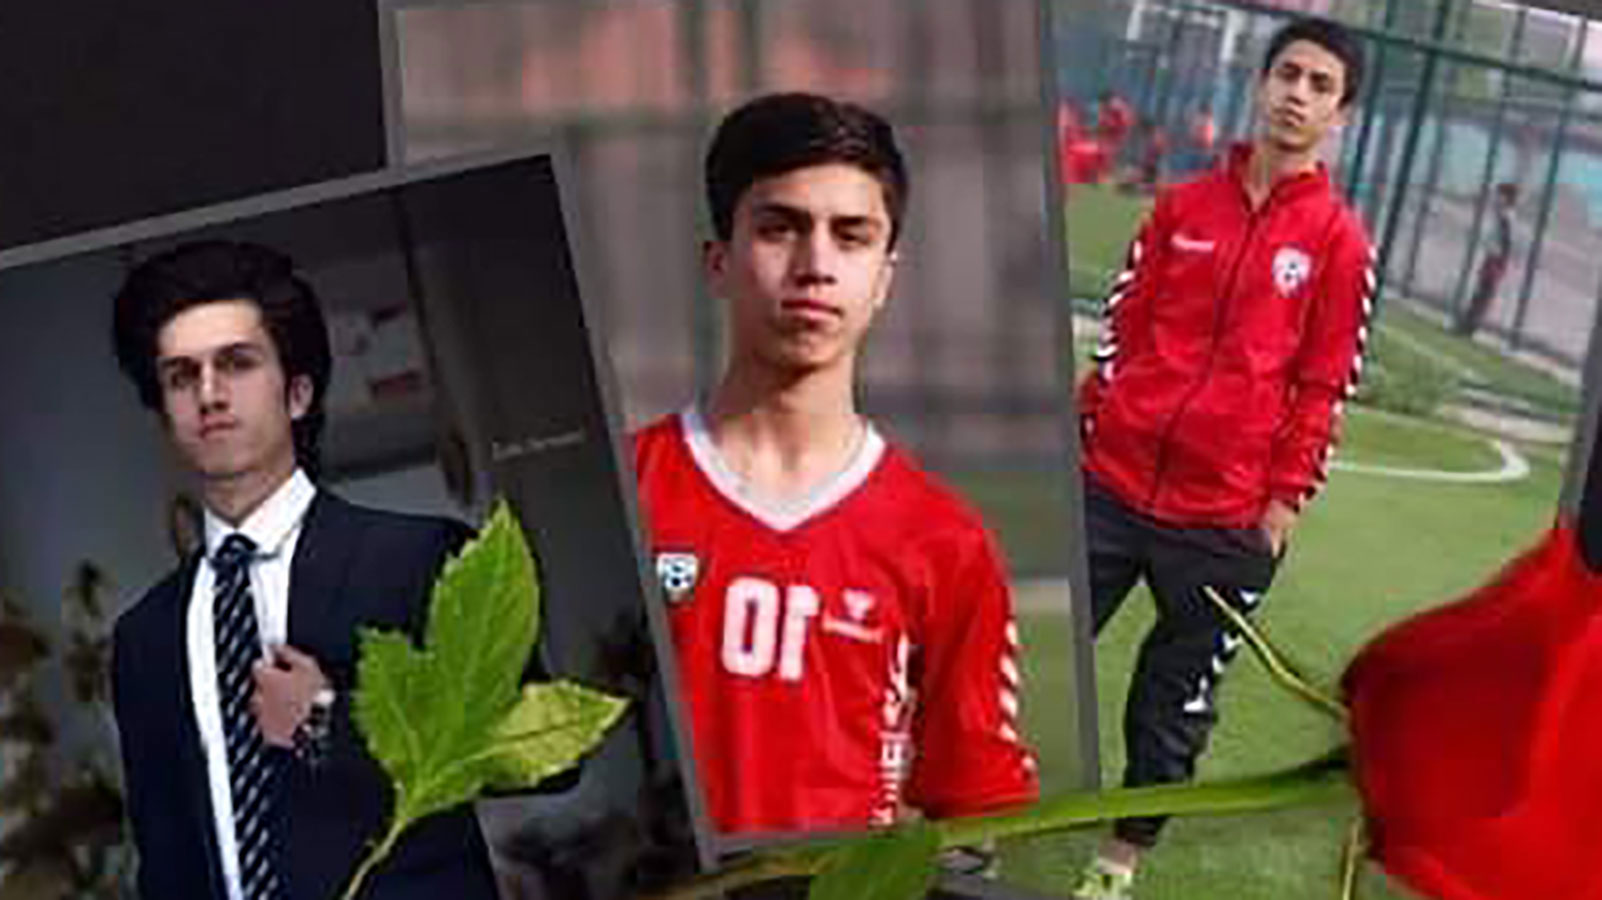 Afghanistan's General Directorate of Physical Education and Sports posted these photos of Zaki Anwari on Facebook on August 19, 2021.